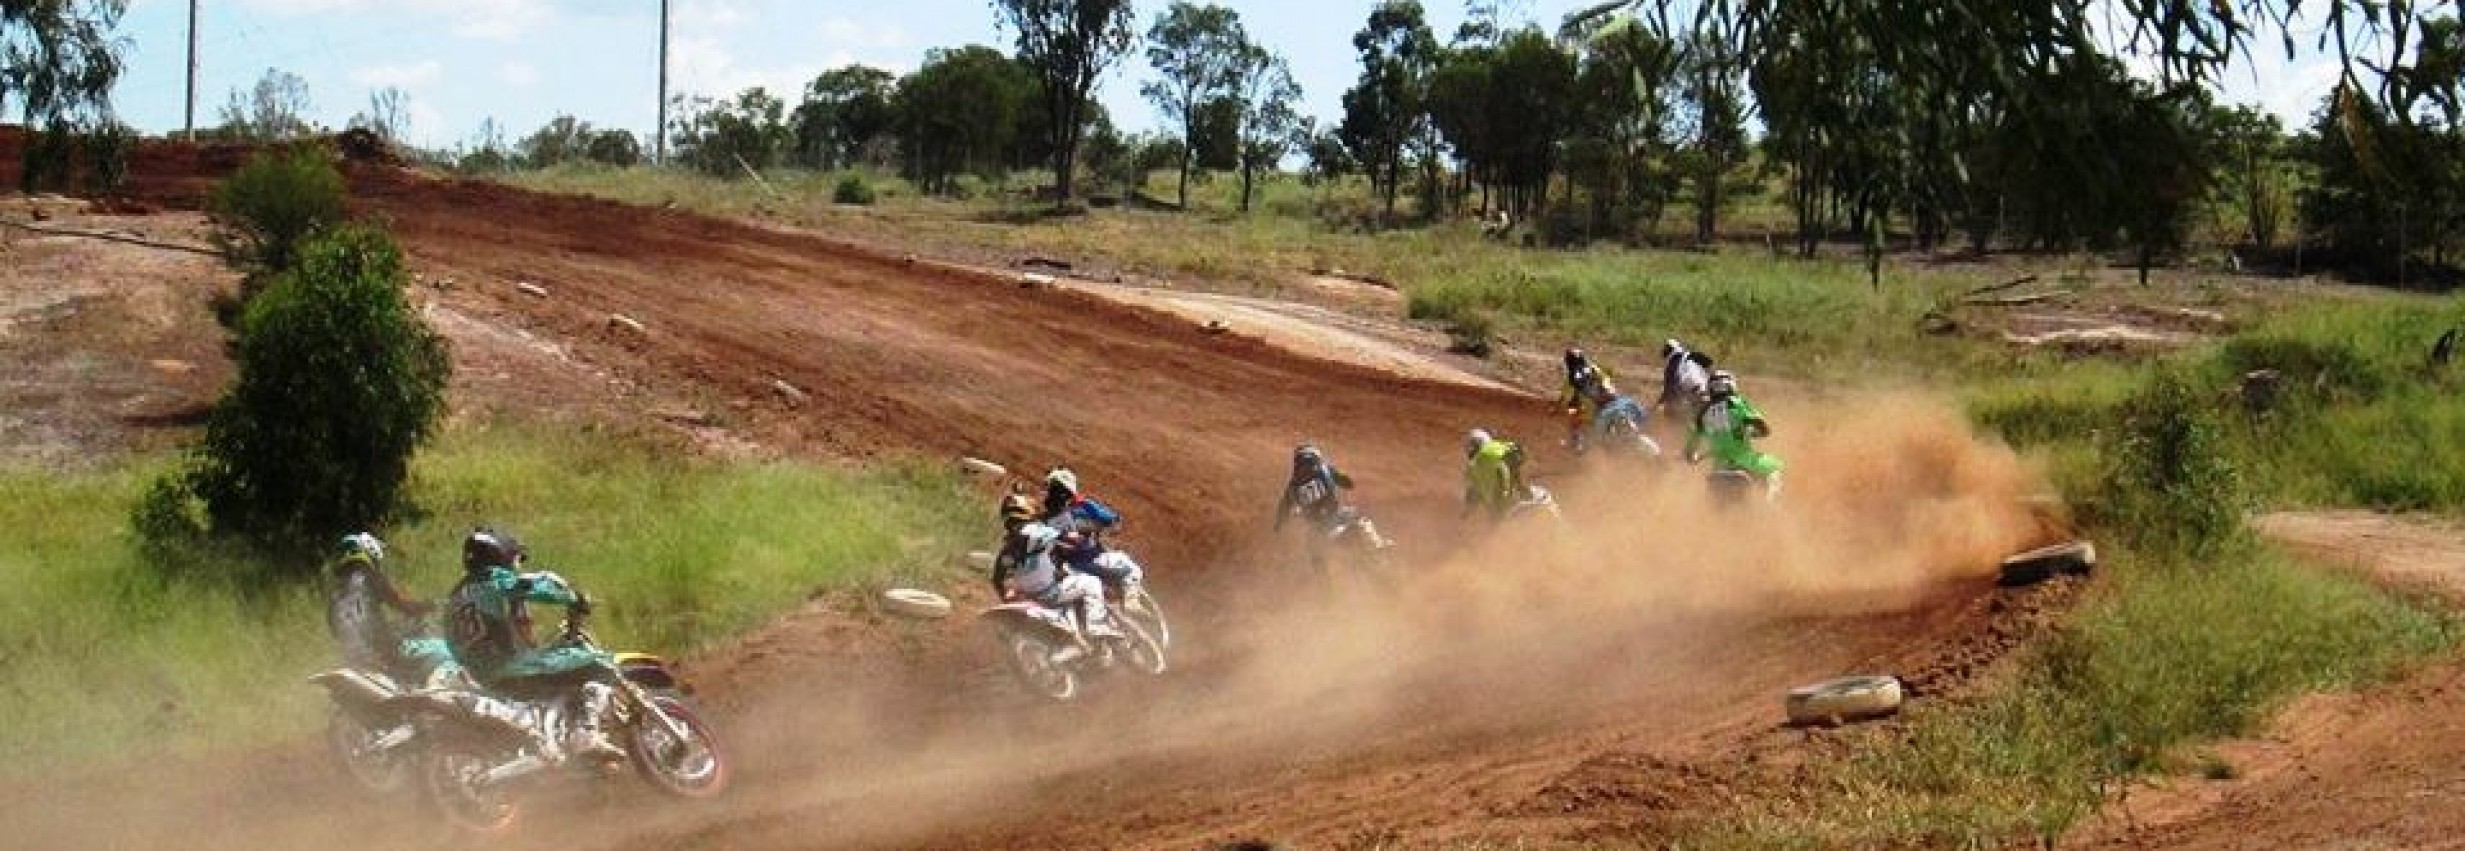 Moranbah Junior Motocross Club